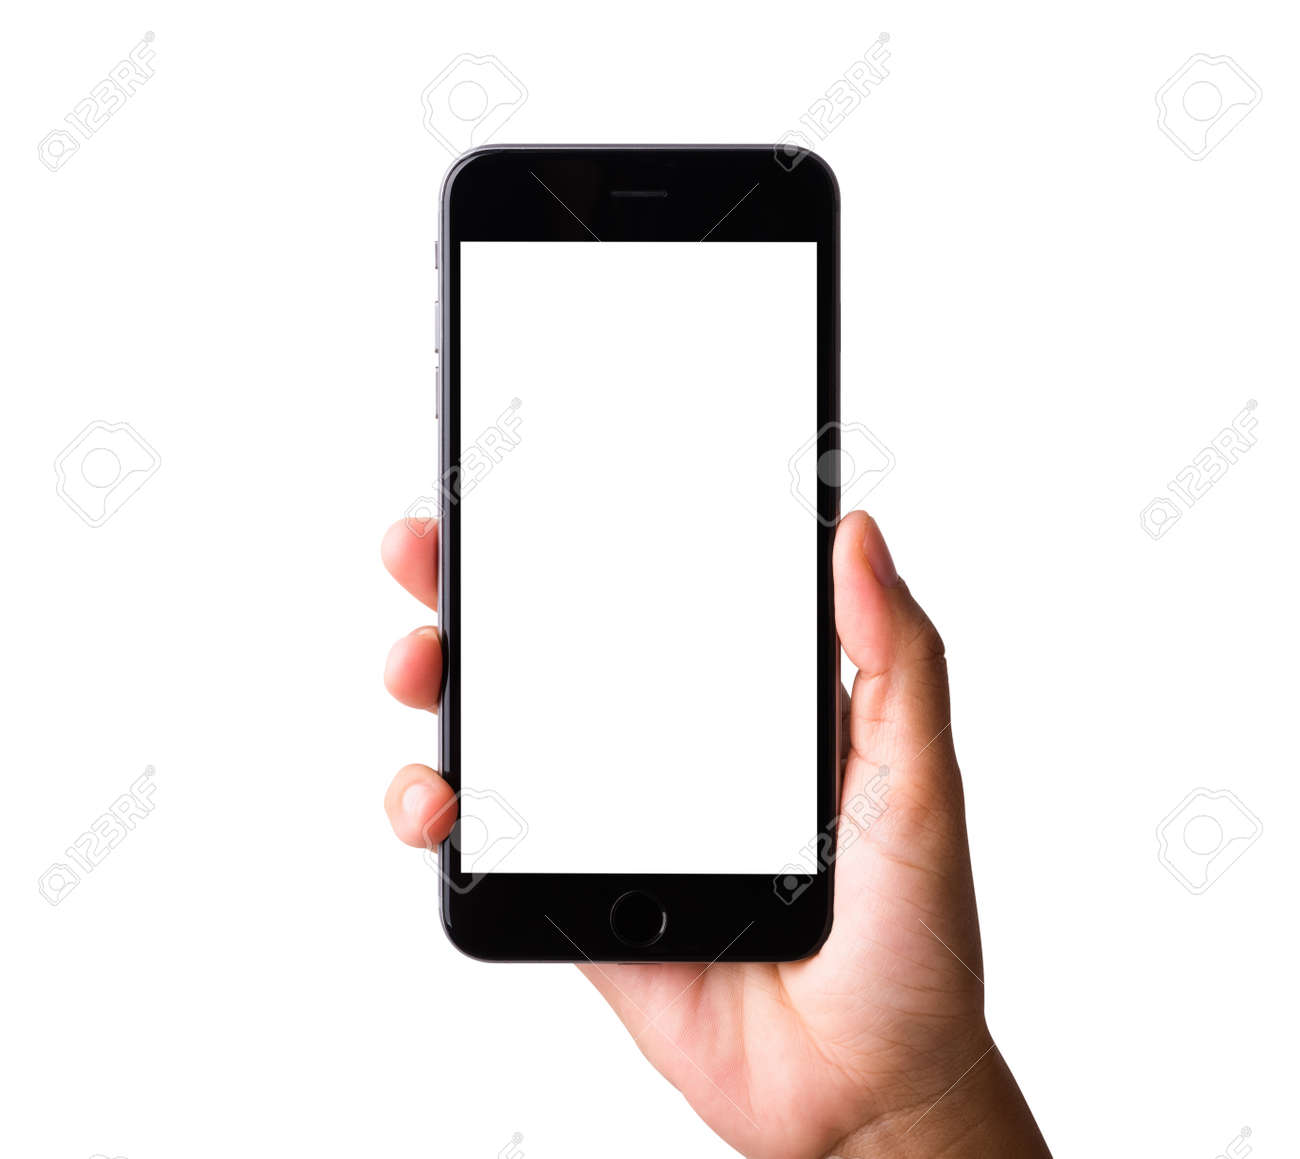 Woman hand holding a smartphone blank white screen. Female holds the modern mobile phone on hands studio shot isolated on over white background with clipping mask path on the phone and screen - 157439444